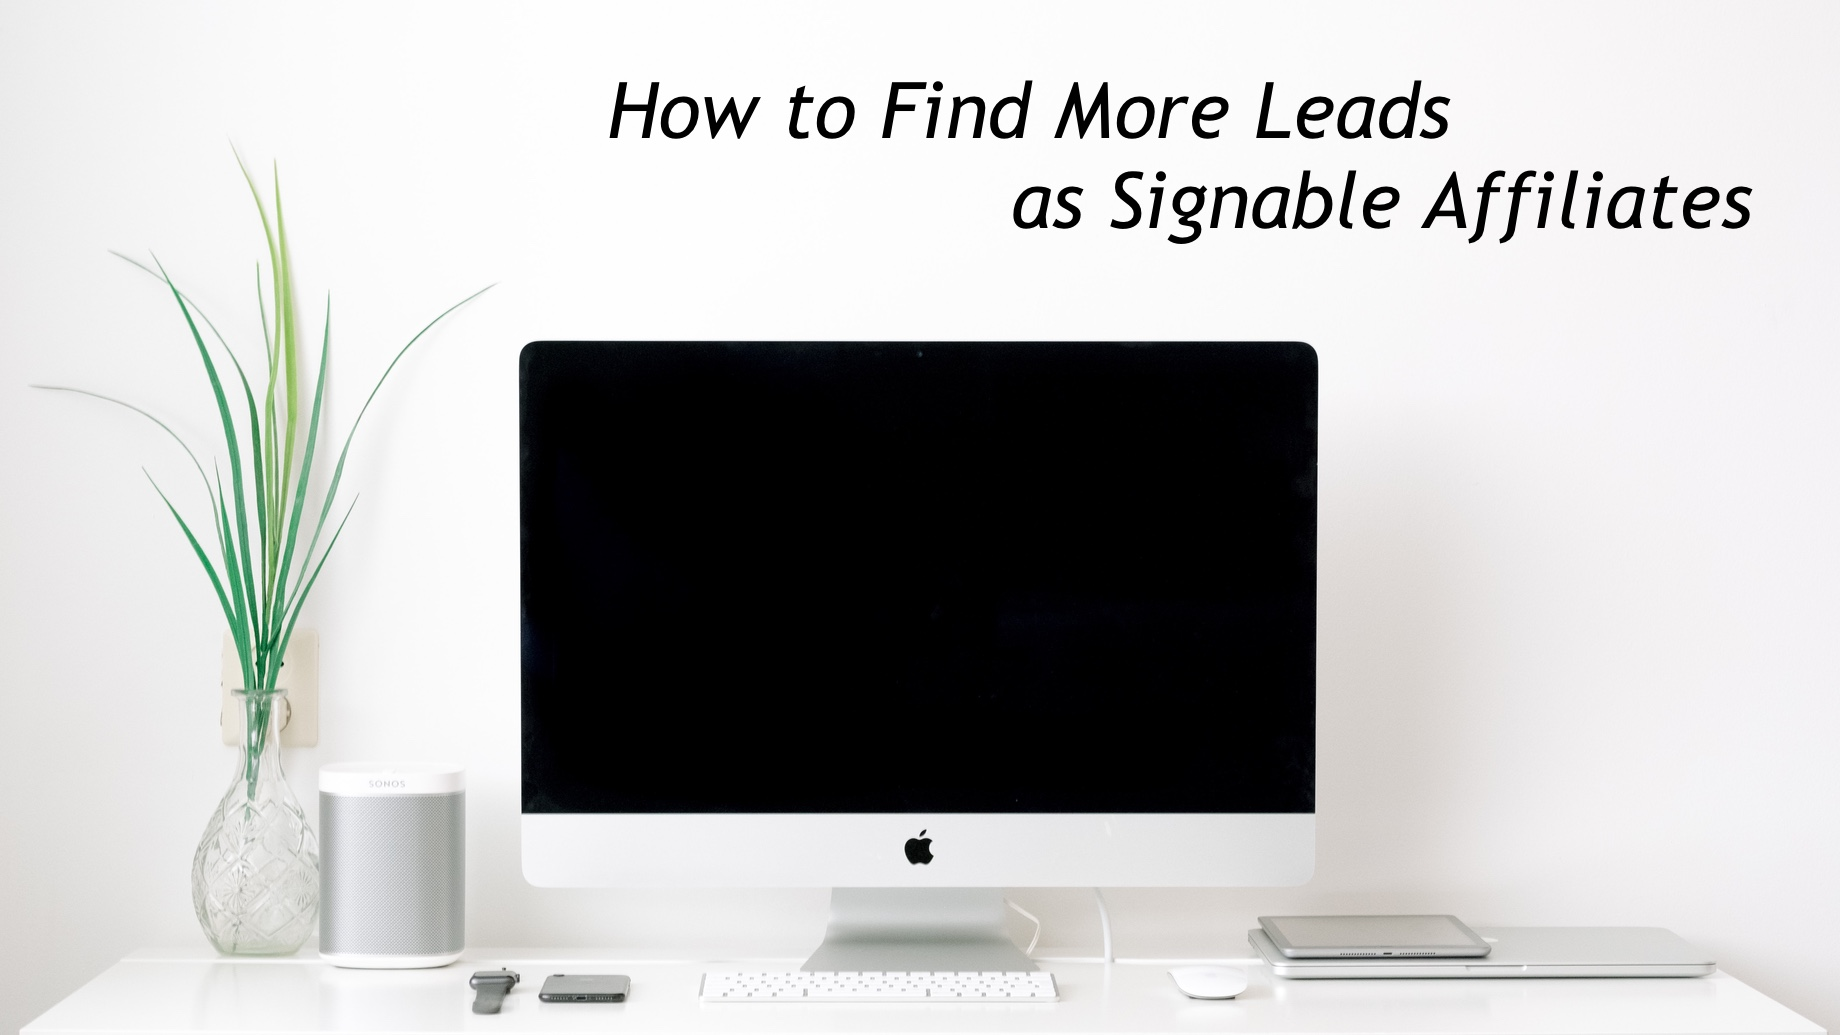 How to Find More Leads as Signable Affiliates